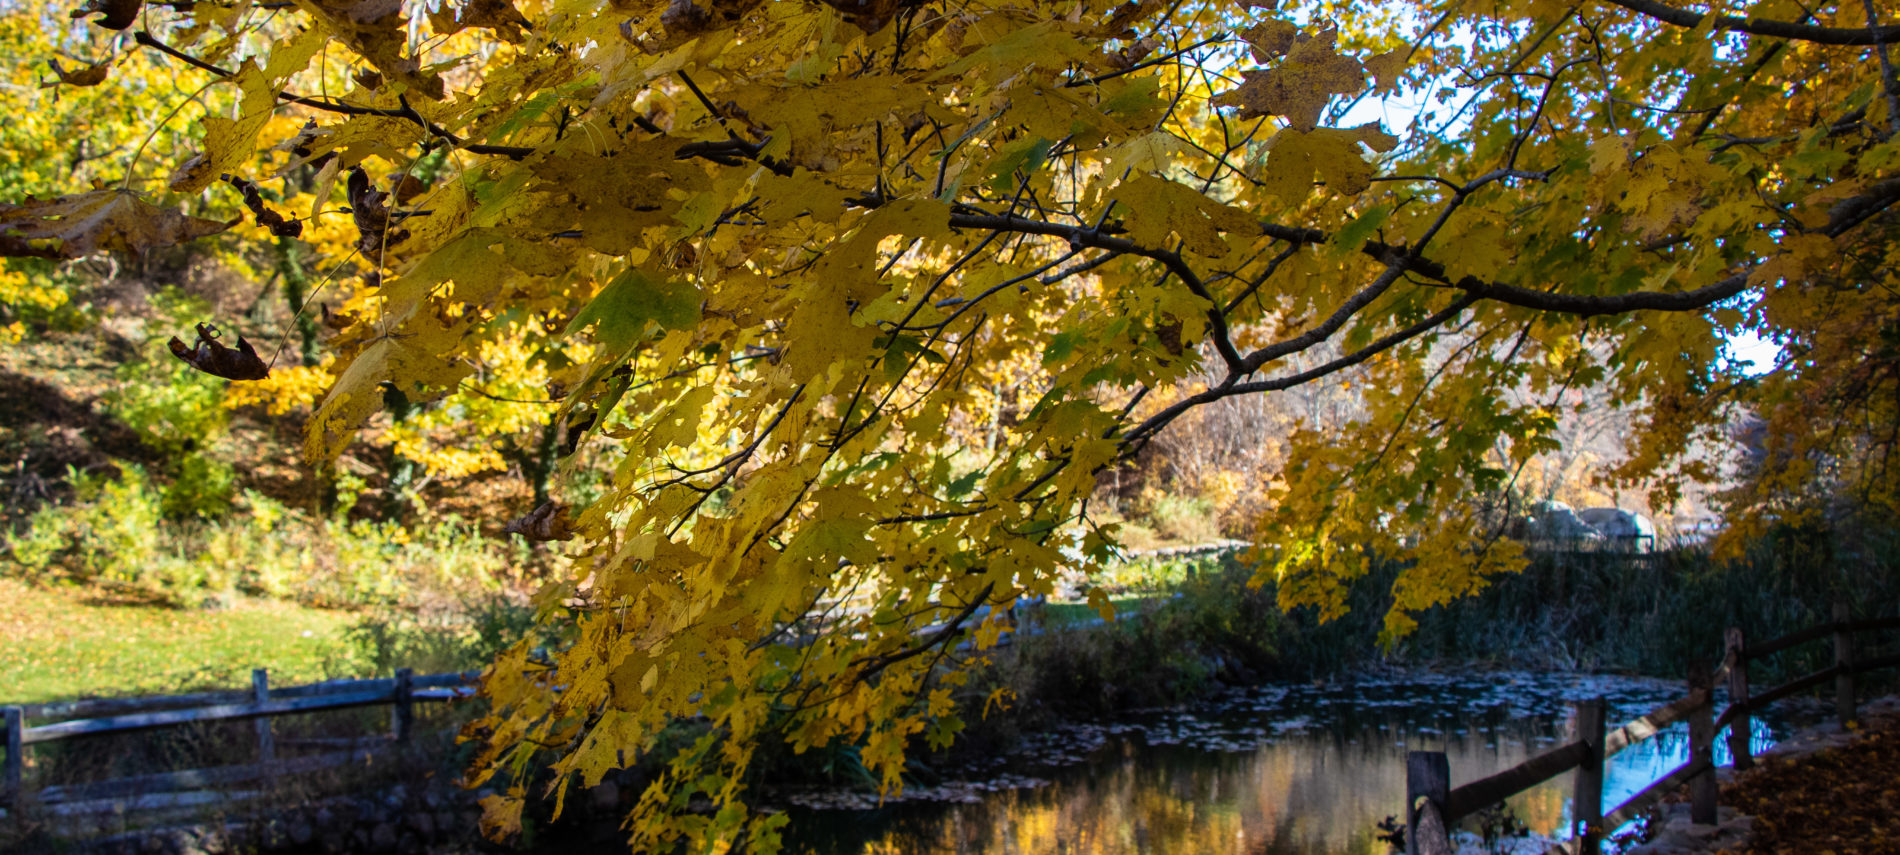 Tree with yellow leaves overlooking a creek on a sunny day with blue skies